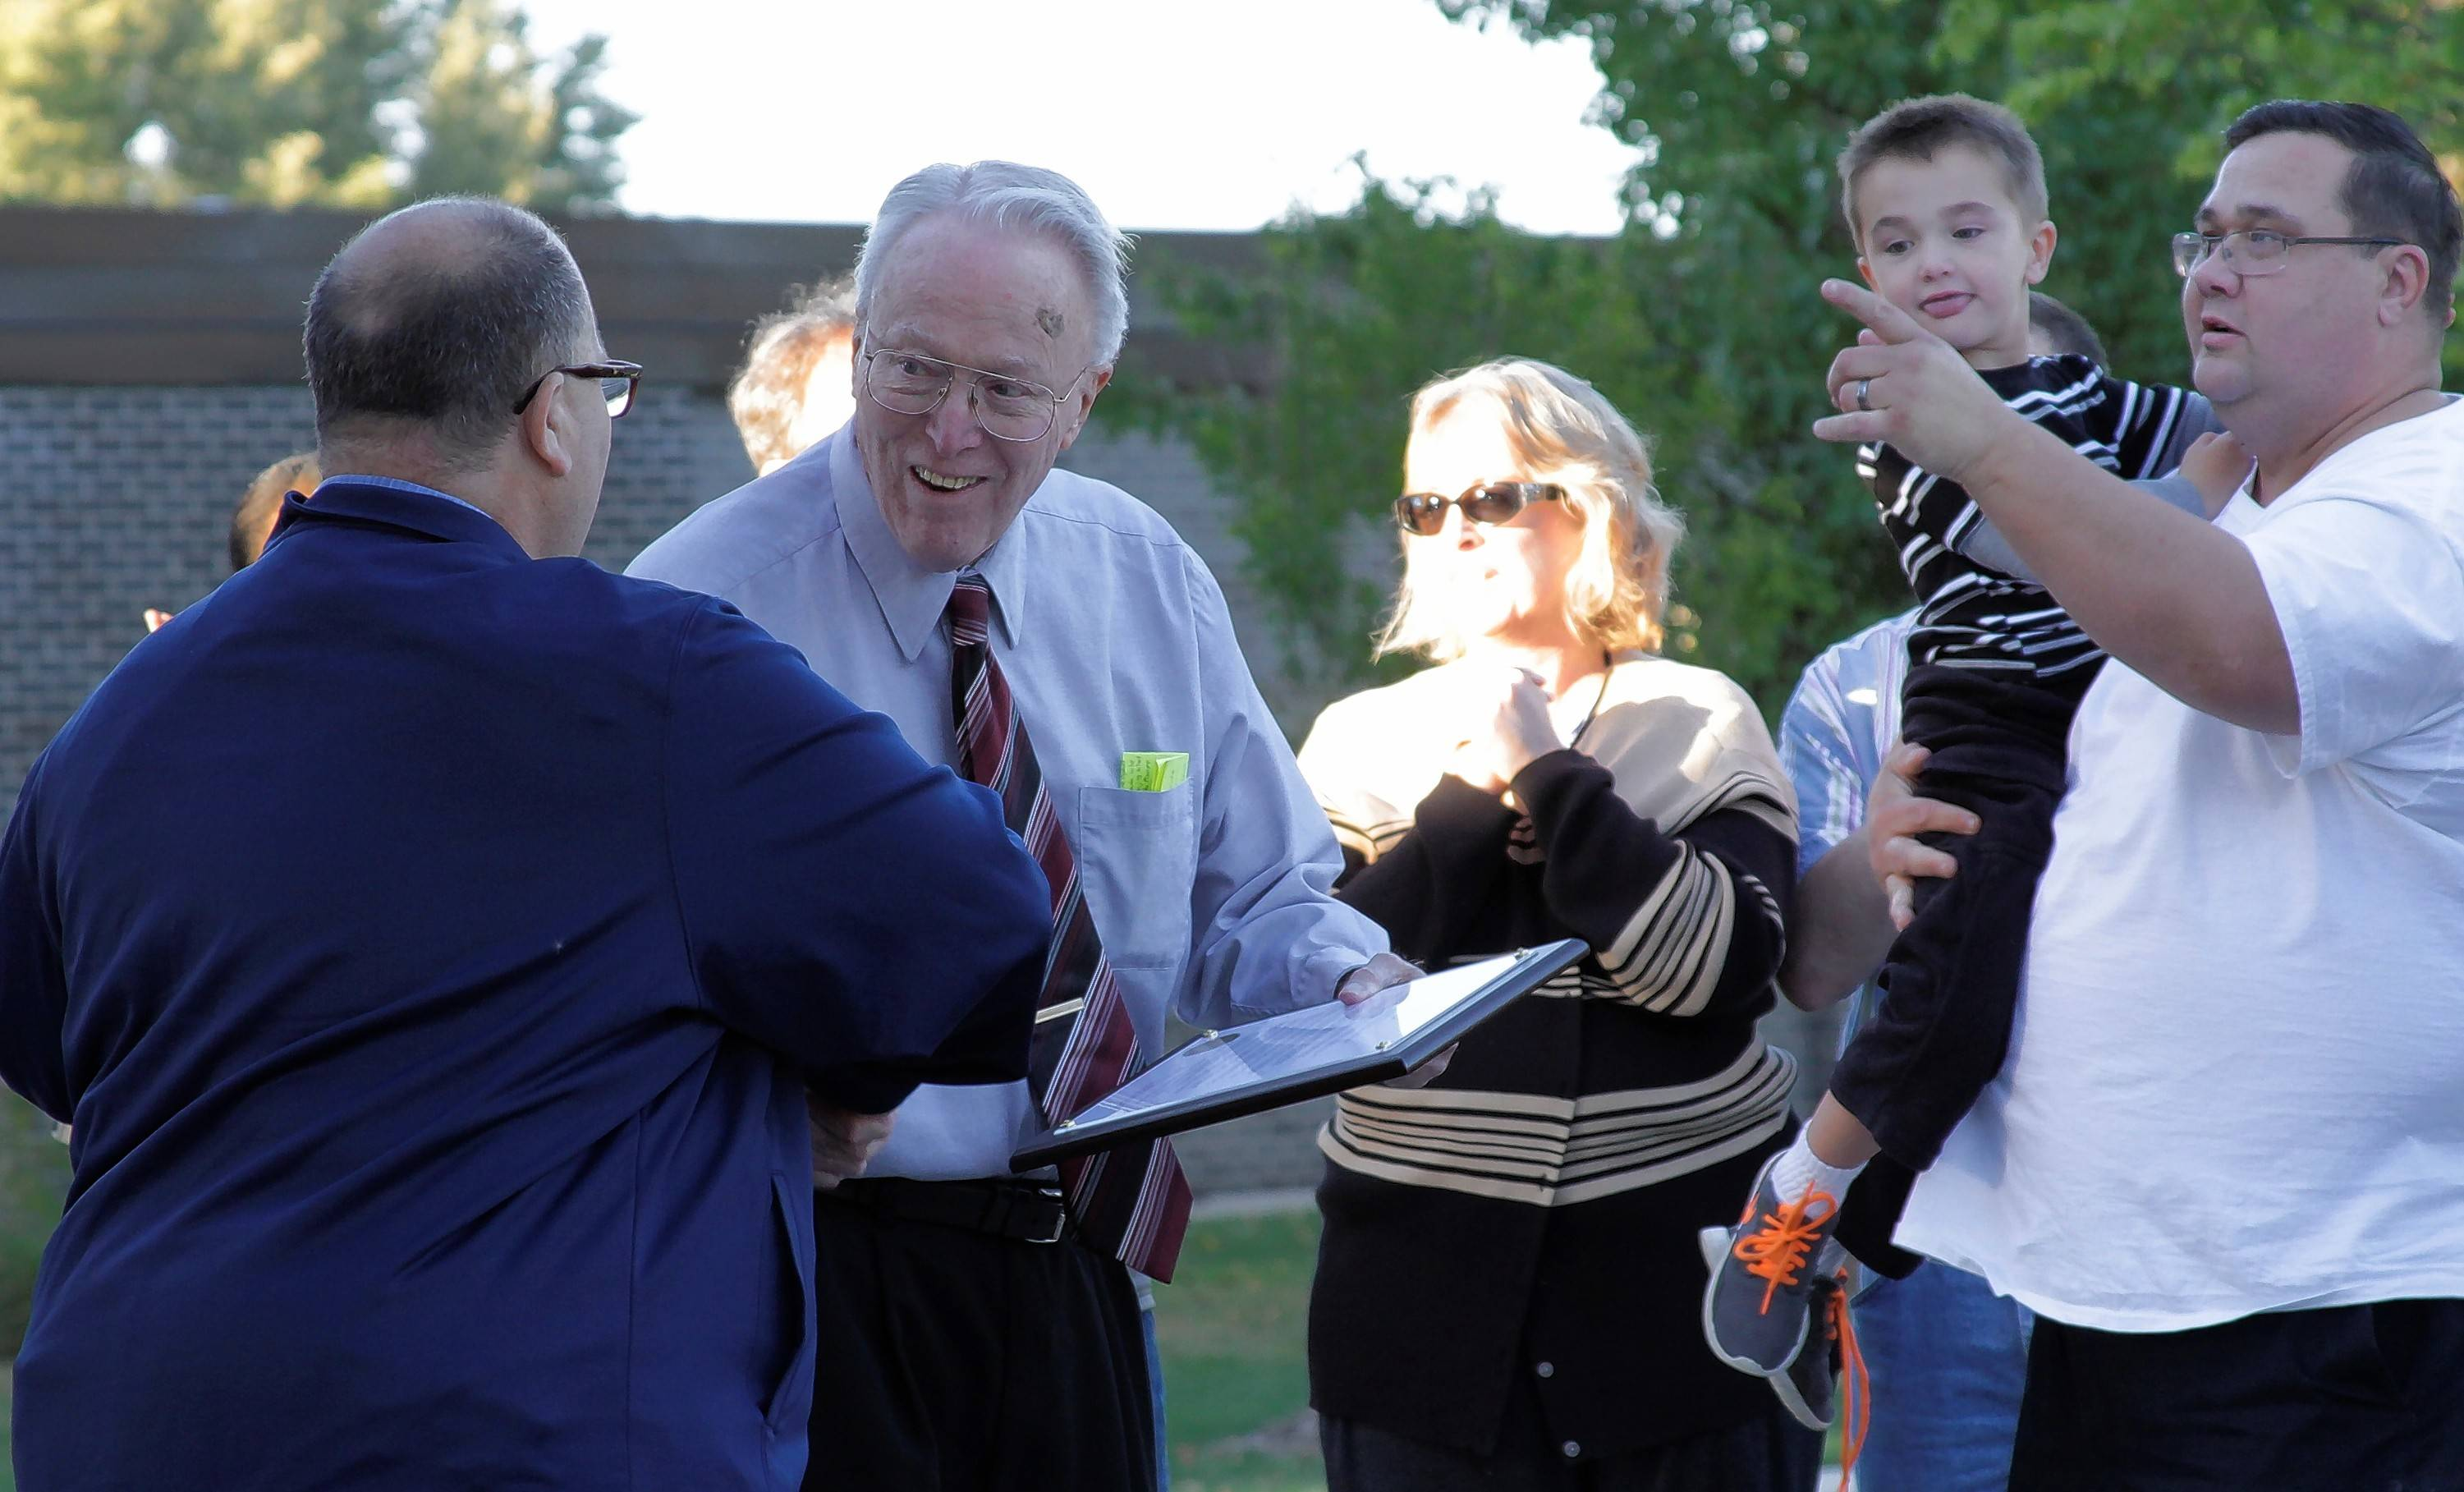 Buffalo Grove Park Board President Rick Drazner shakes hands with Bill Kiddle as his oldest daughter, Bonnie Kathleen Doucet, grandson Aidan Doucet, and son-in-law Al Doucet look on.